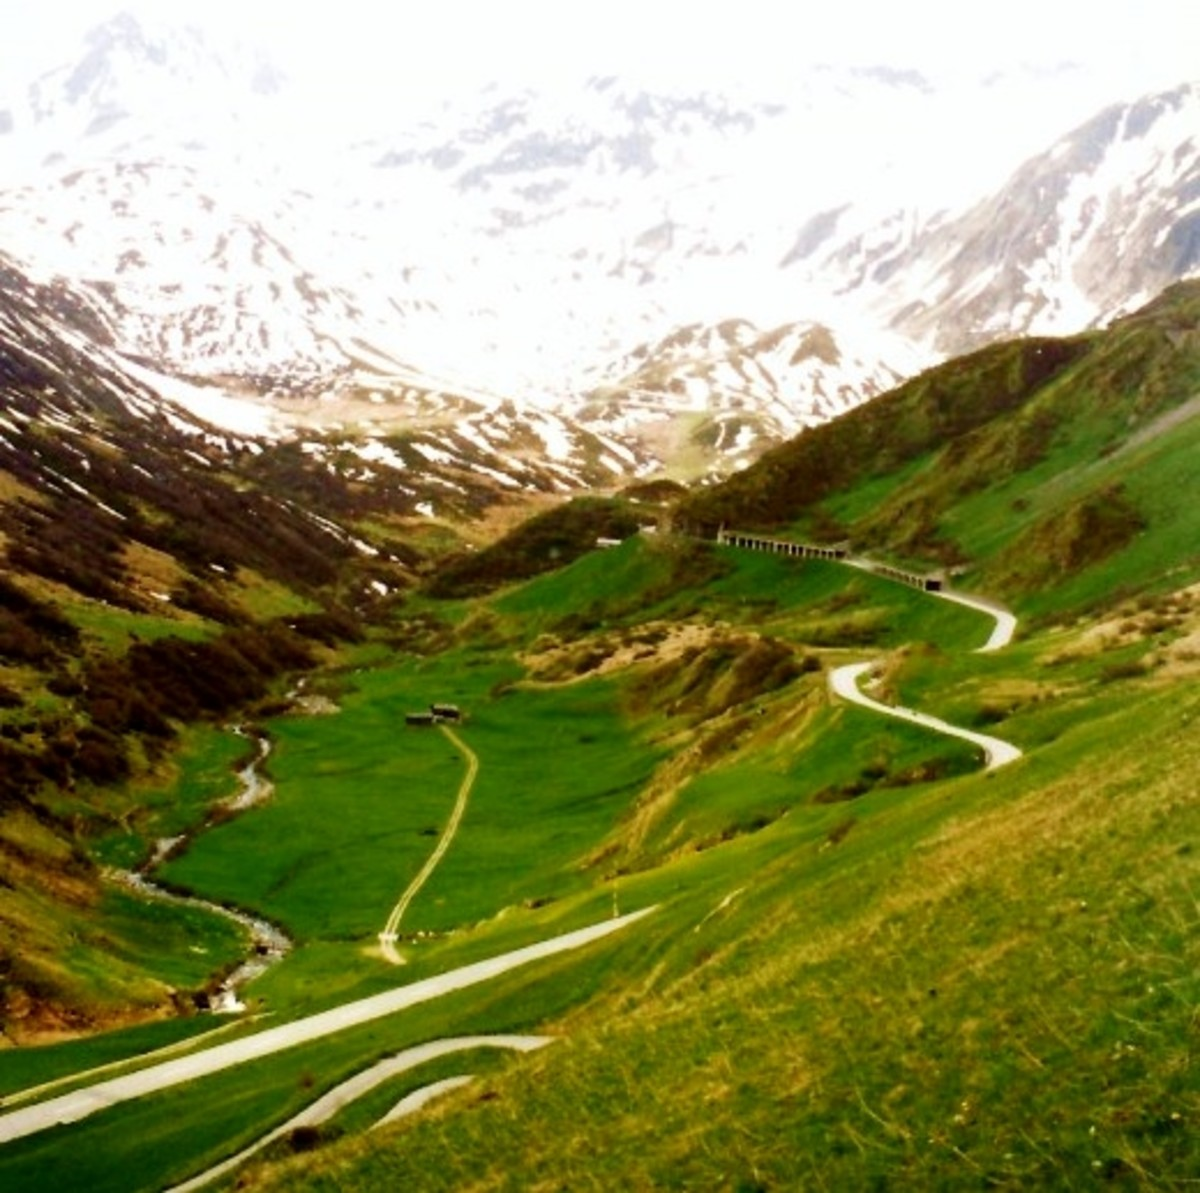 Meandering roads take one to locations in the Swiss countryside.